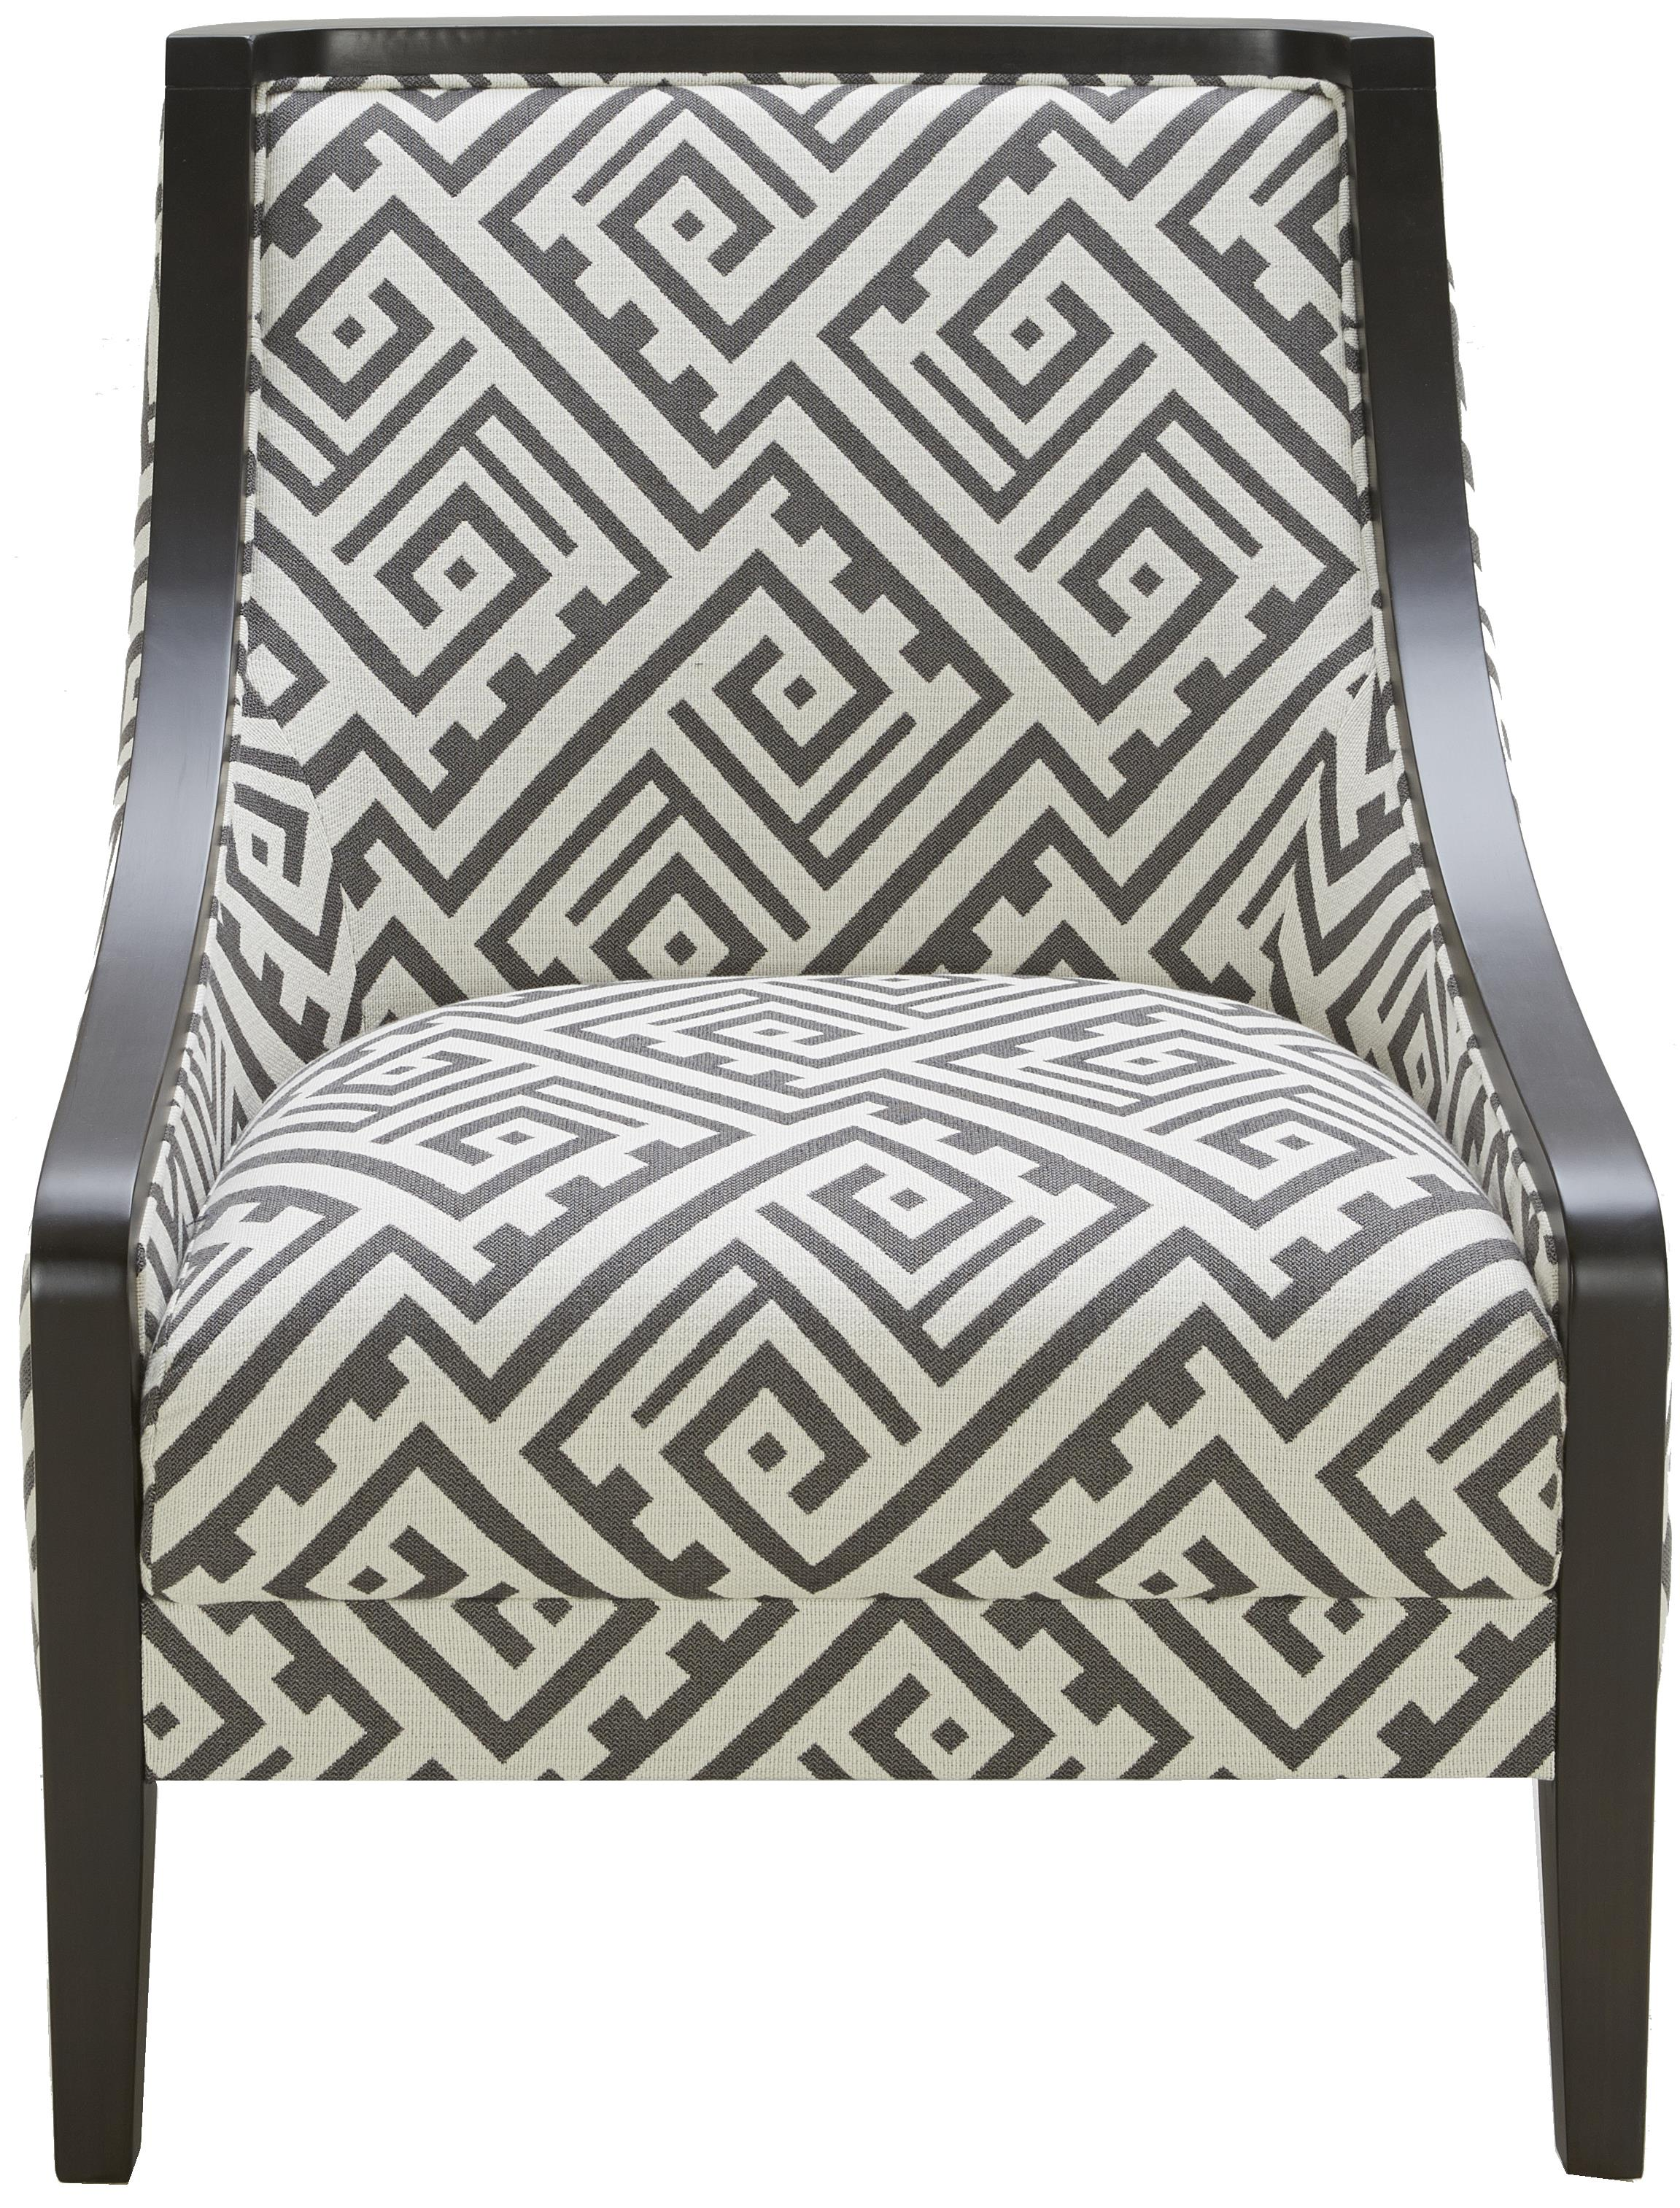 Urban Evolution Wood Trim Traditional Accent Chair - Item Number: A825-E105